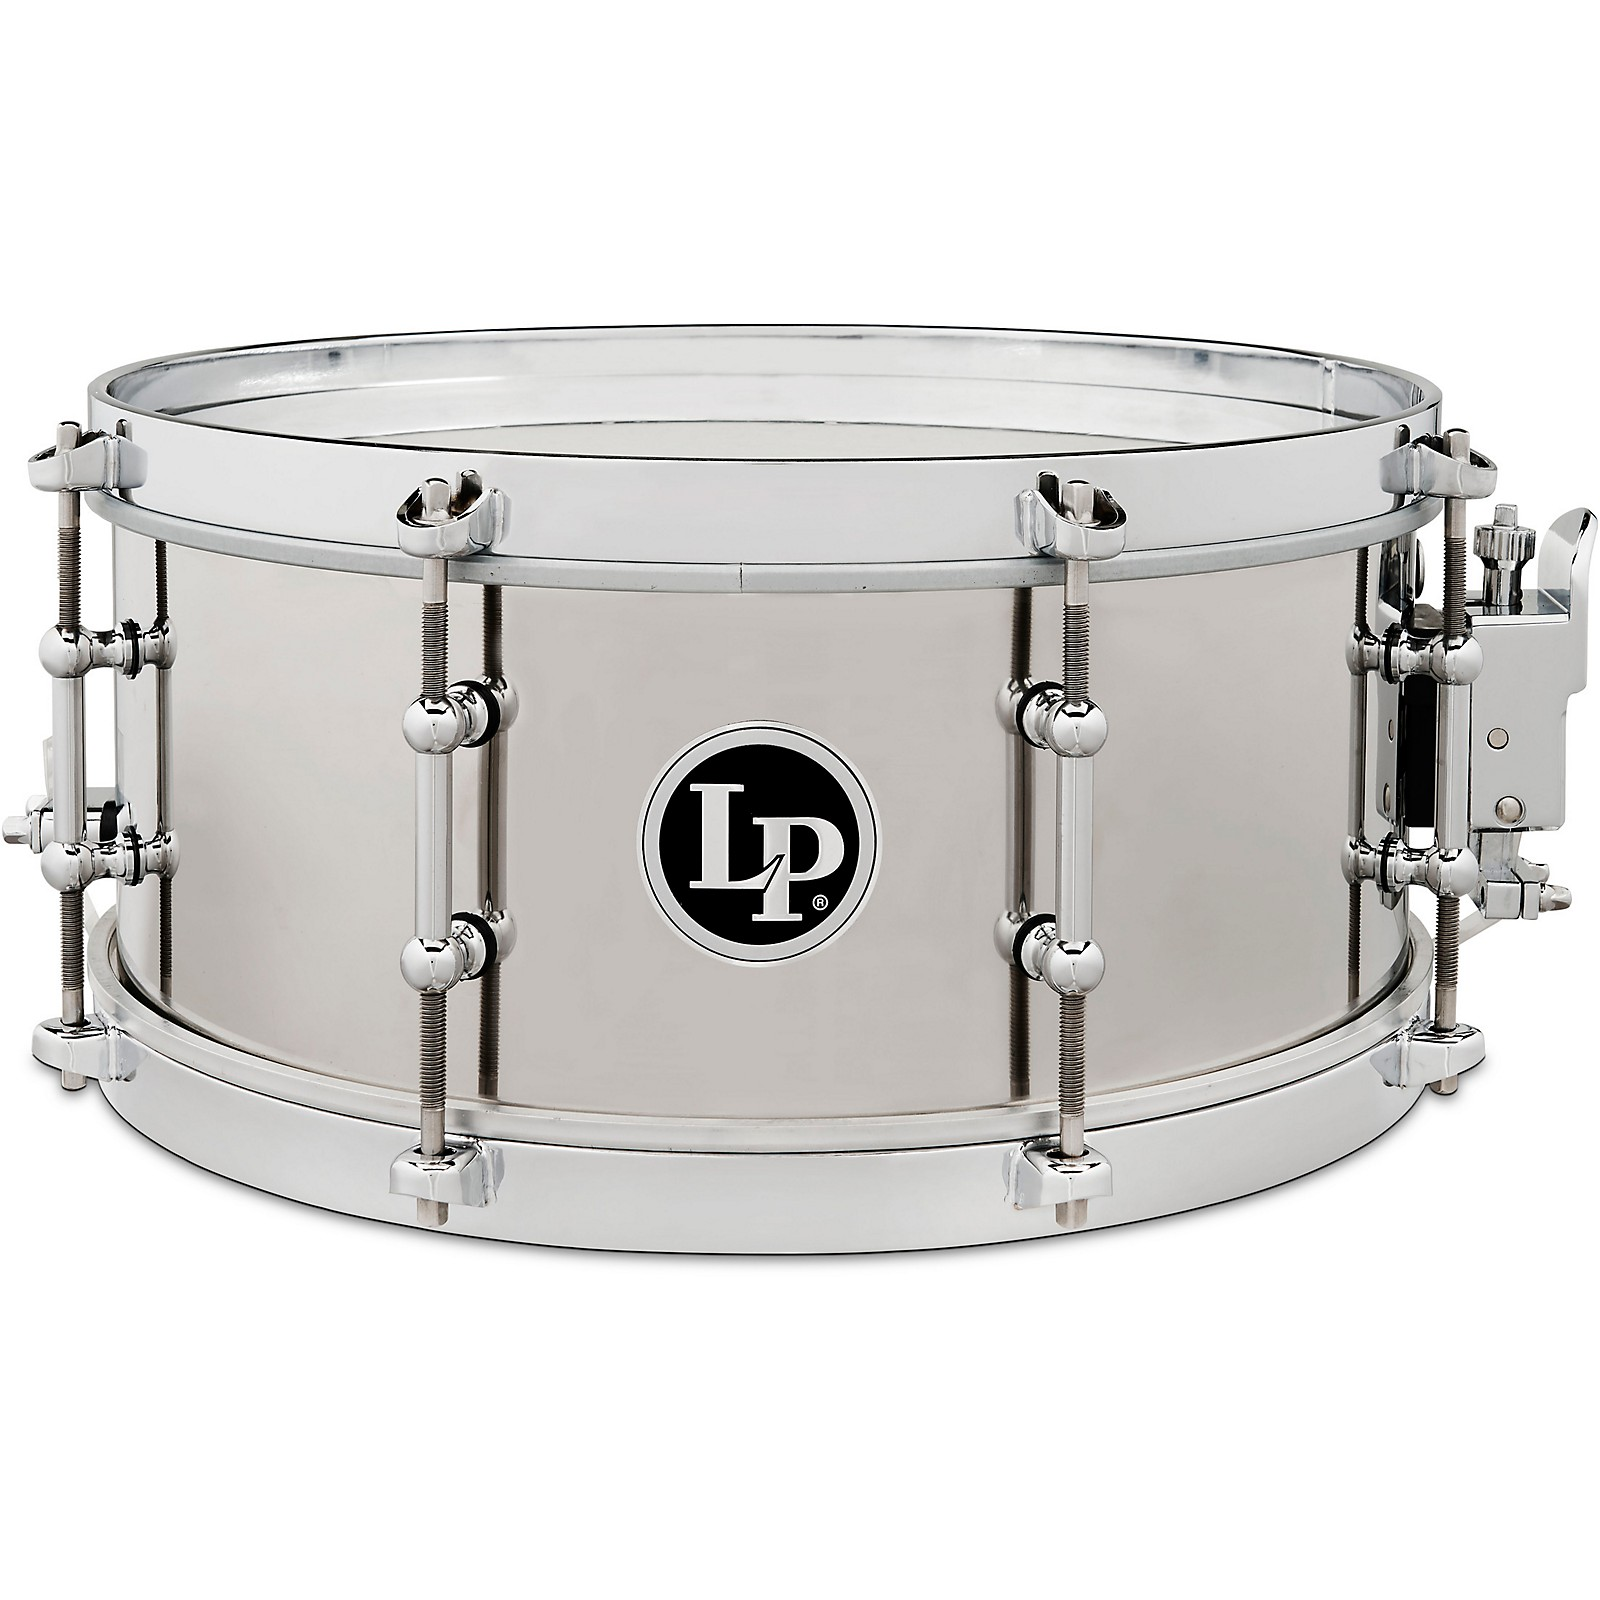 LP Stainless Steel Salsa Snare Drum